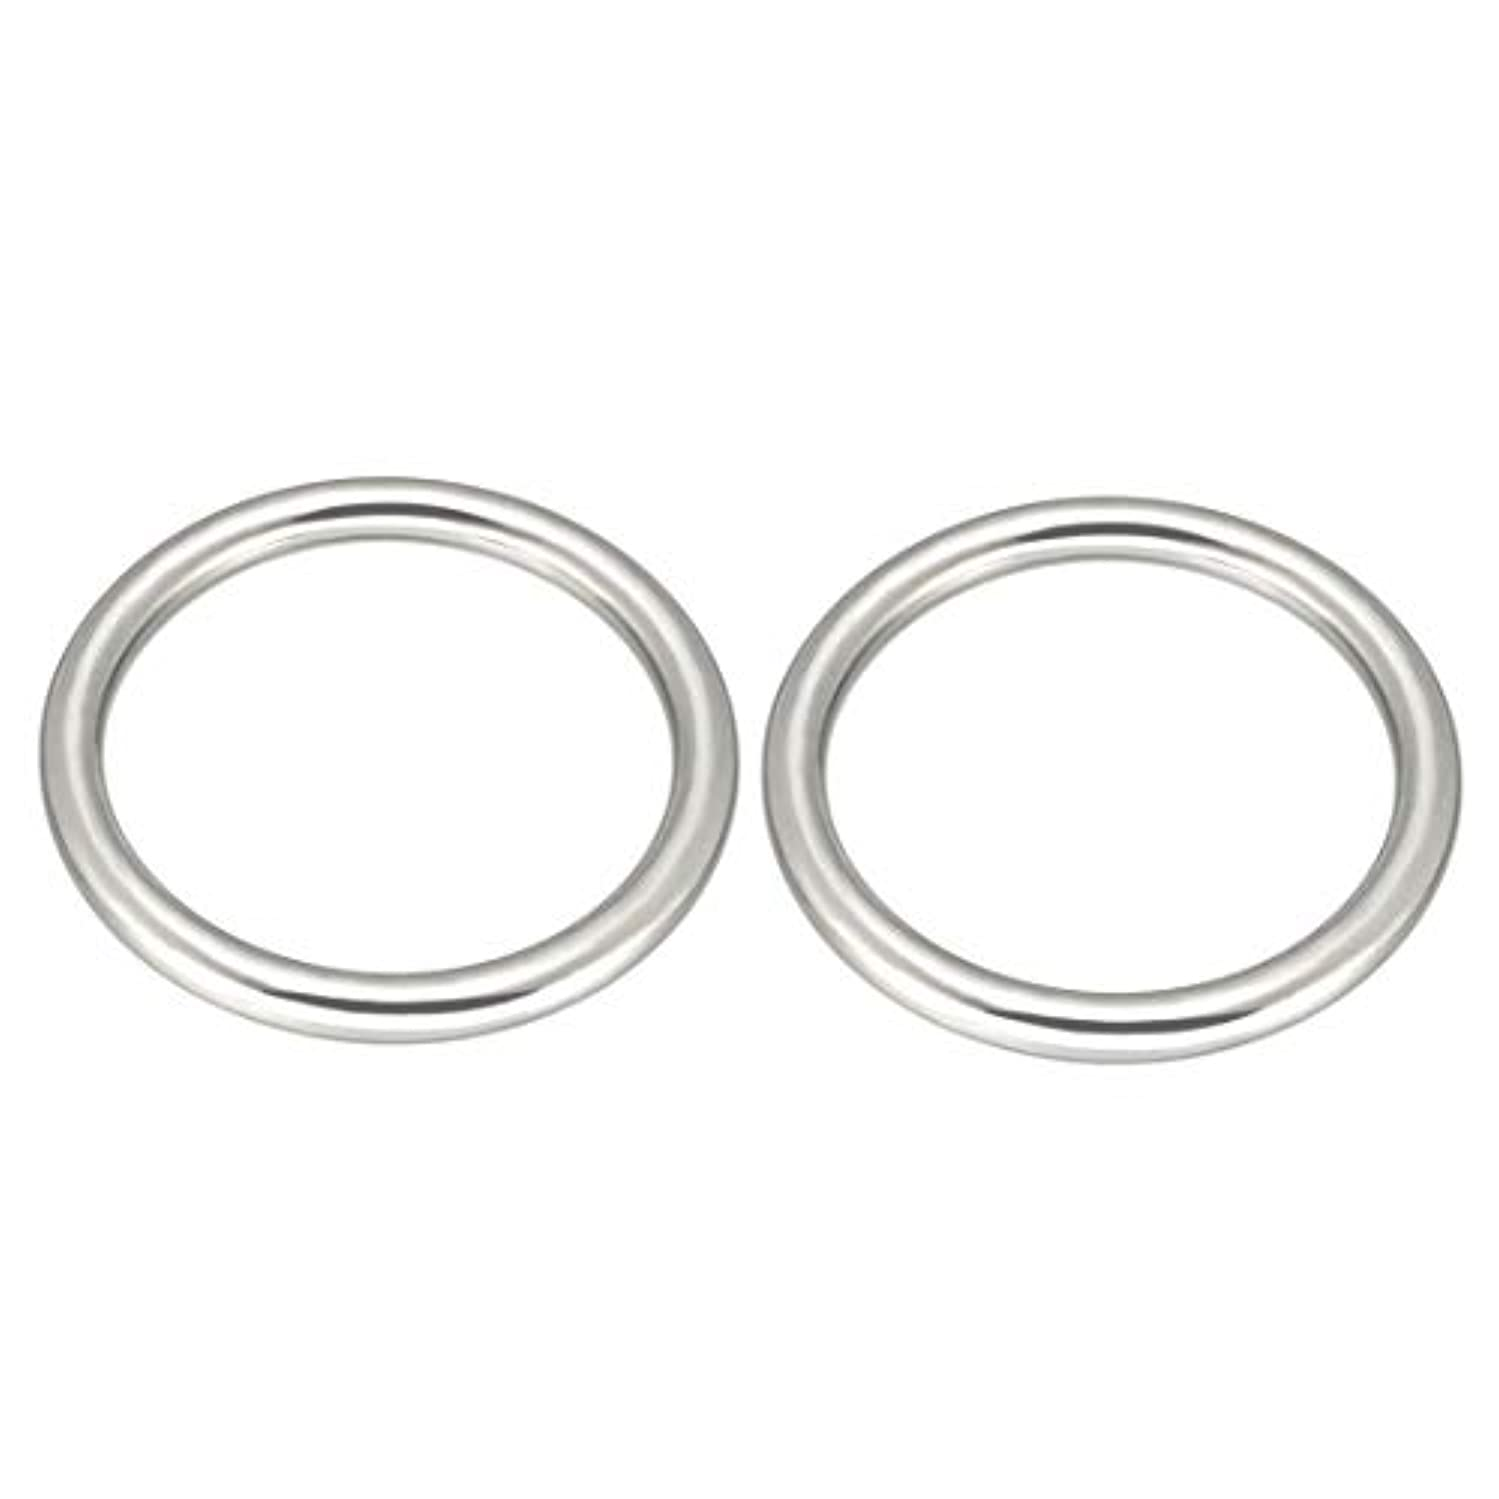 uxcell 2 Pcs Multi-Purpose Metal O Ring Buckle Welded 50mm x 40mm x 5mm for Hardware Bags Ring Hand DIY Accessories